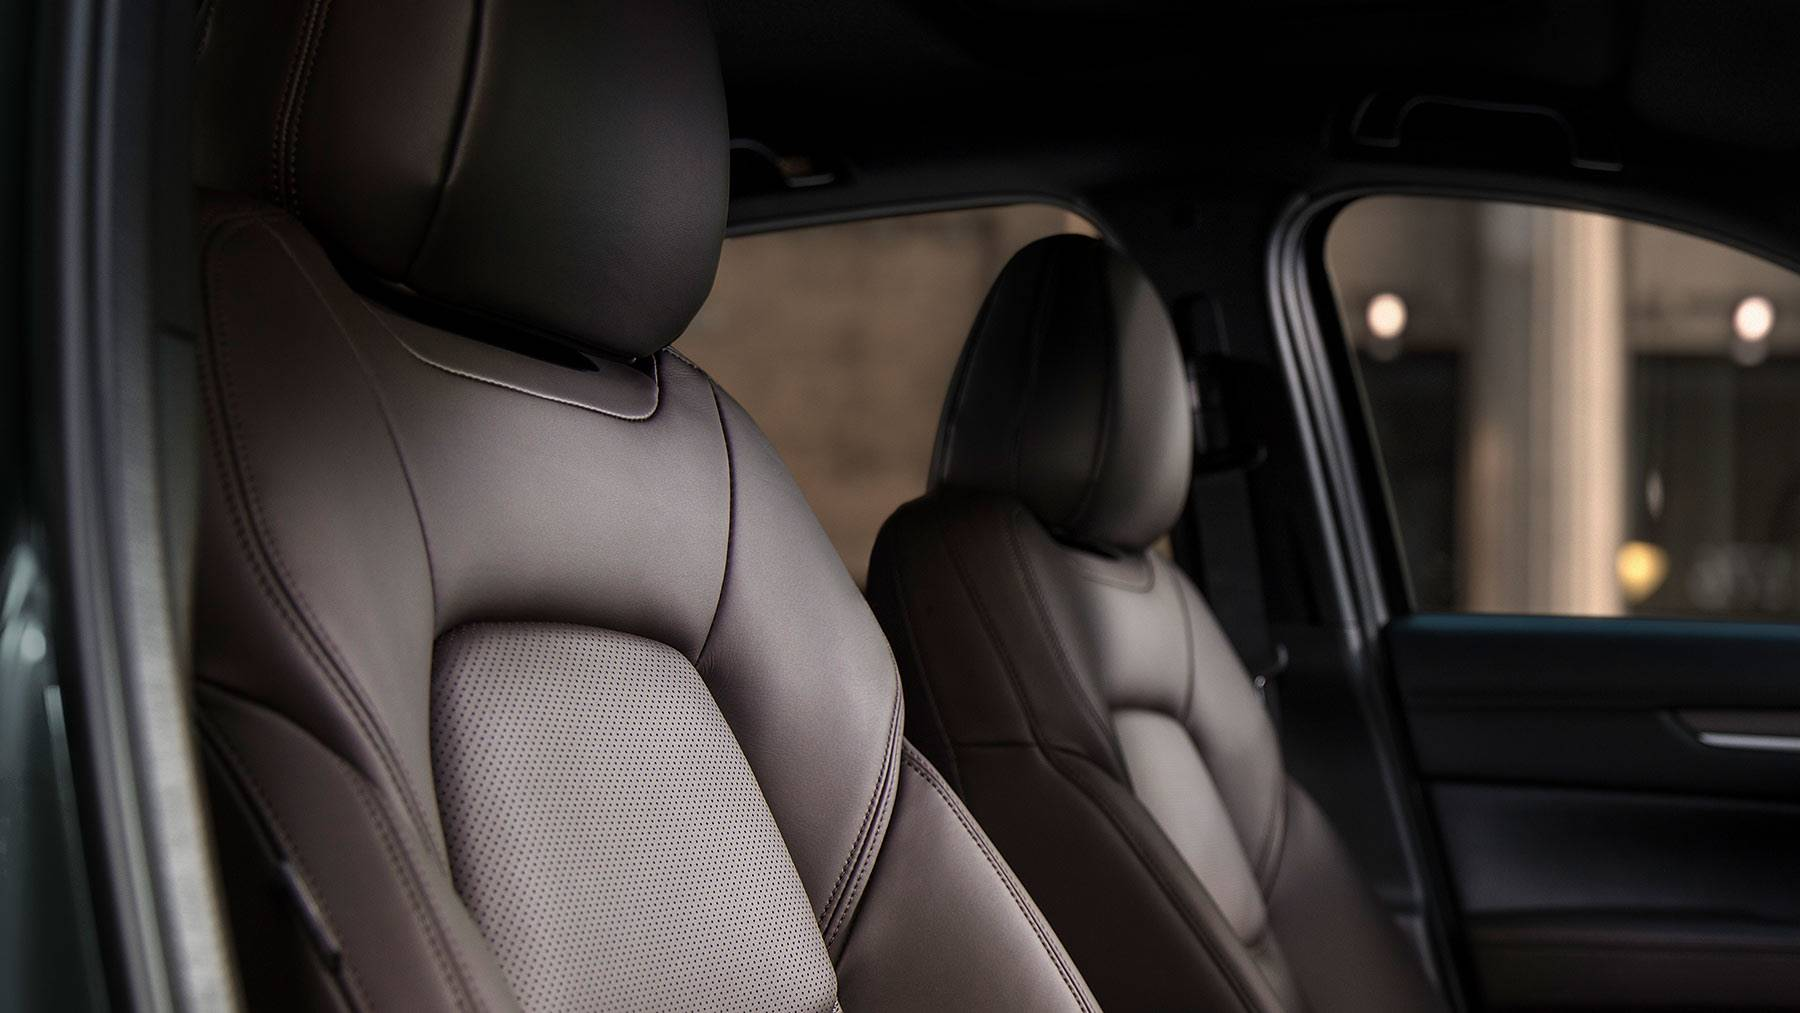 Premium Seating in the Mazda CX-5